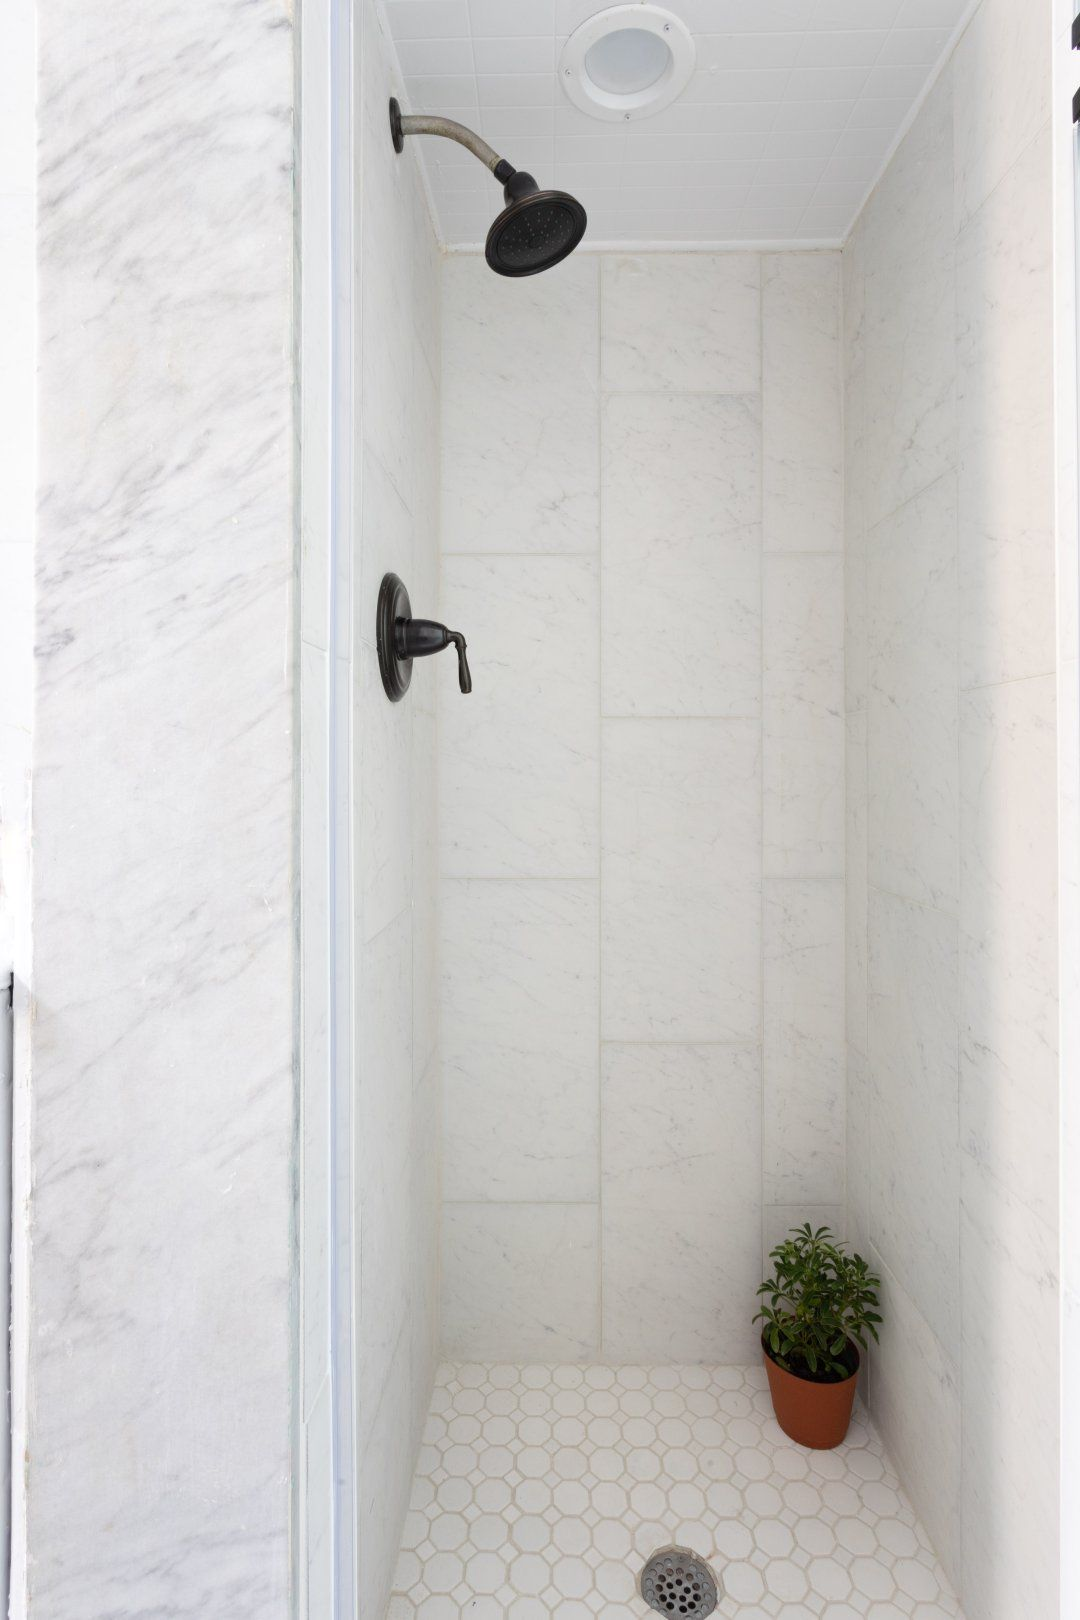 Style Selections Futuro White 12 In X 24 In Glazed Porcelain Marble Look Tile Lowes Com White Tile Shower Porcelain Tile Bathroom Ceramic Tile Bathrooms